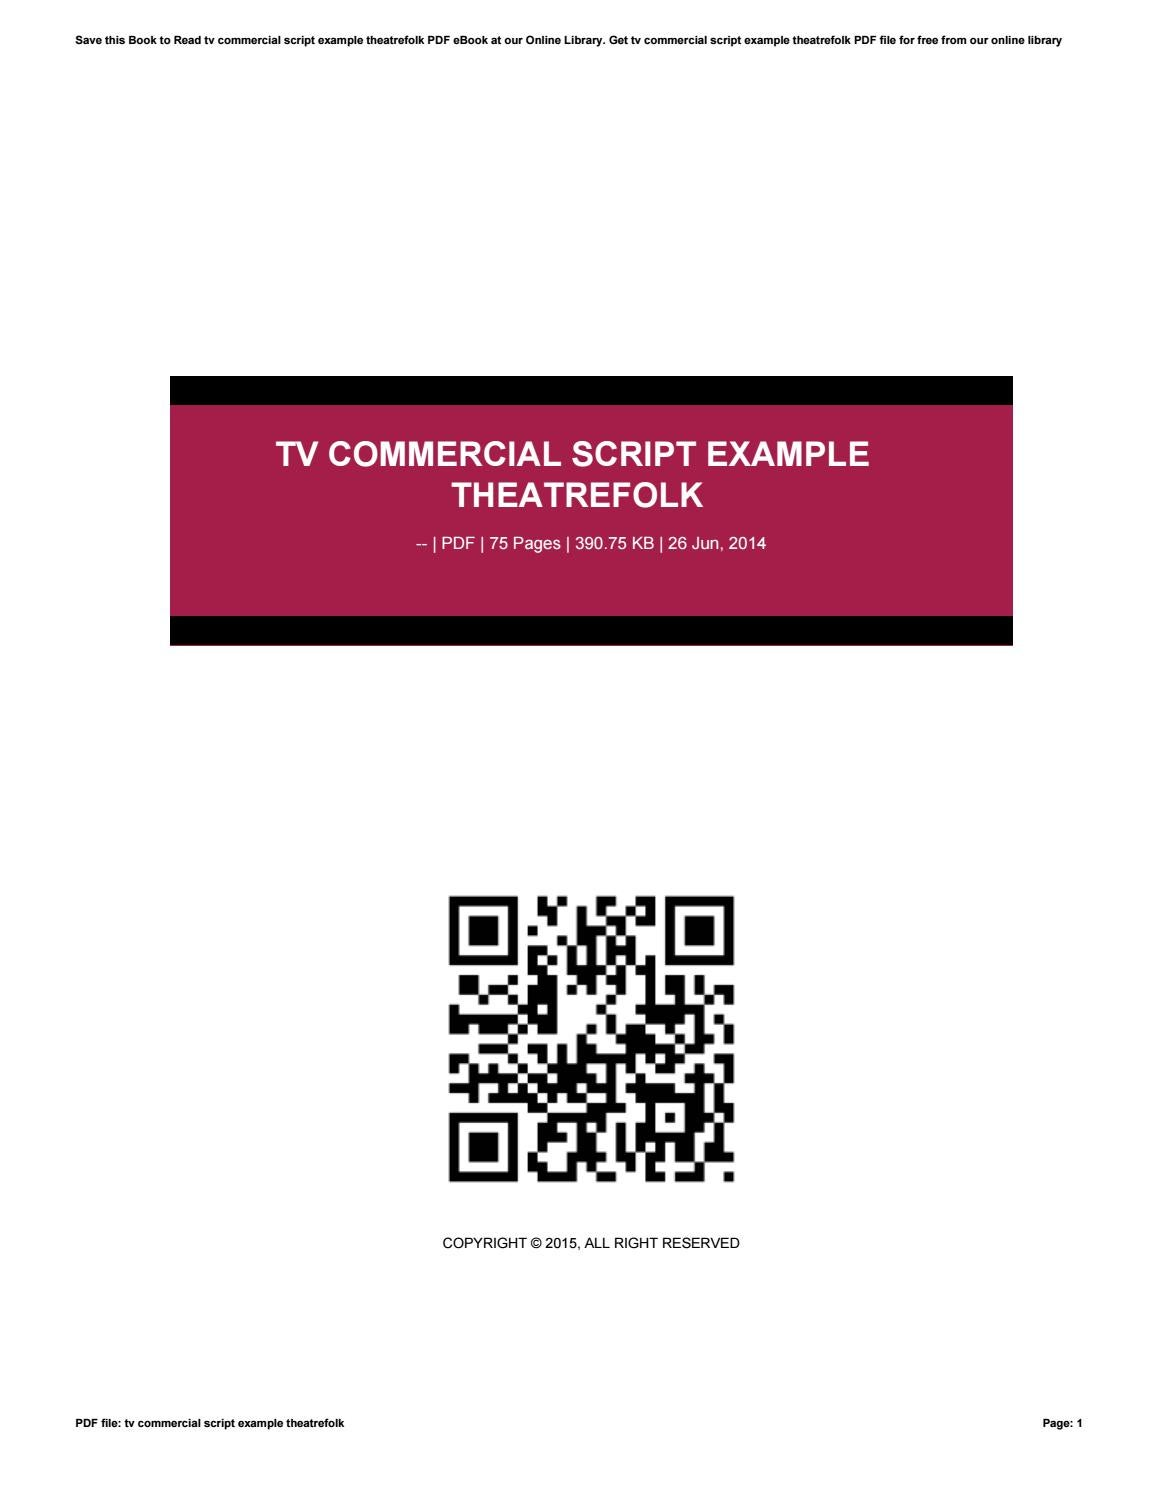 tv commercial script template - commercial script template image collections